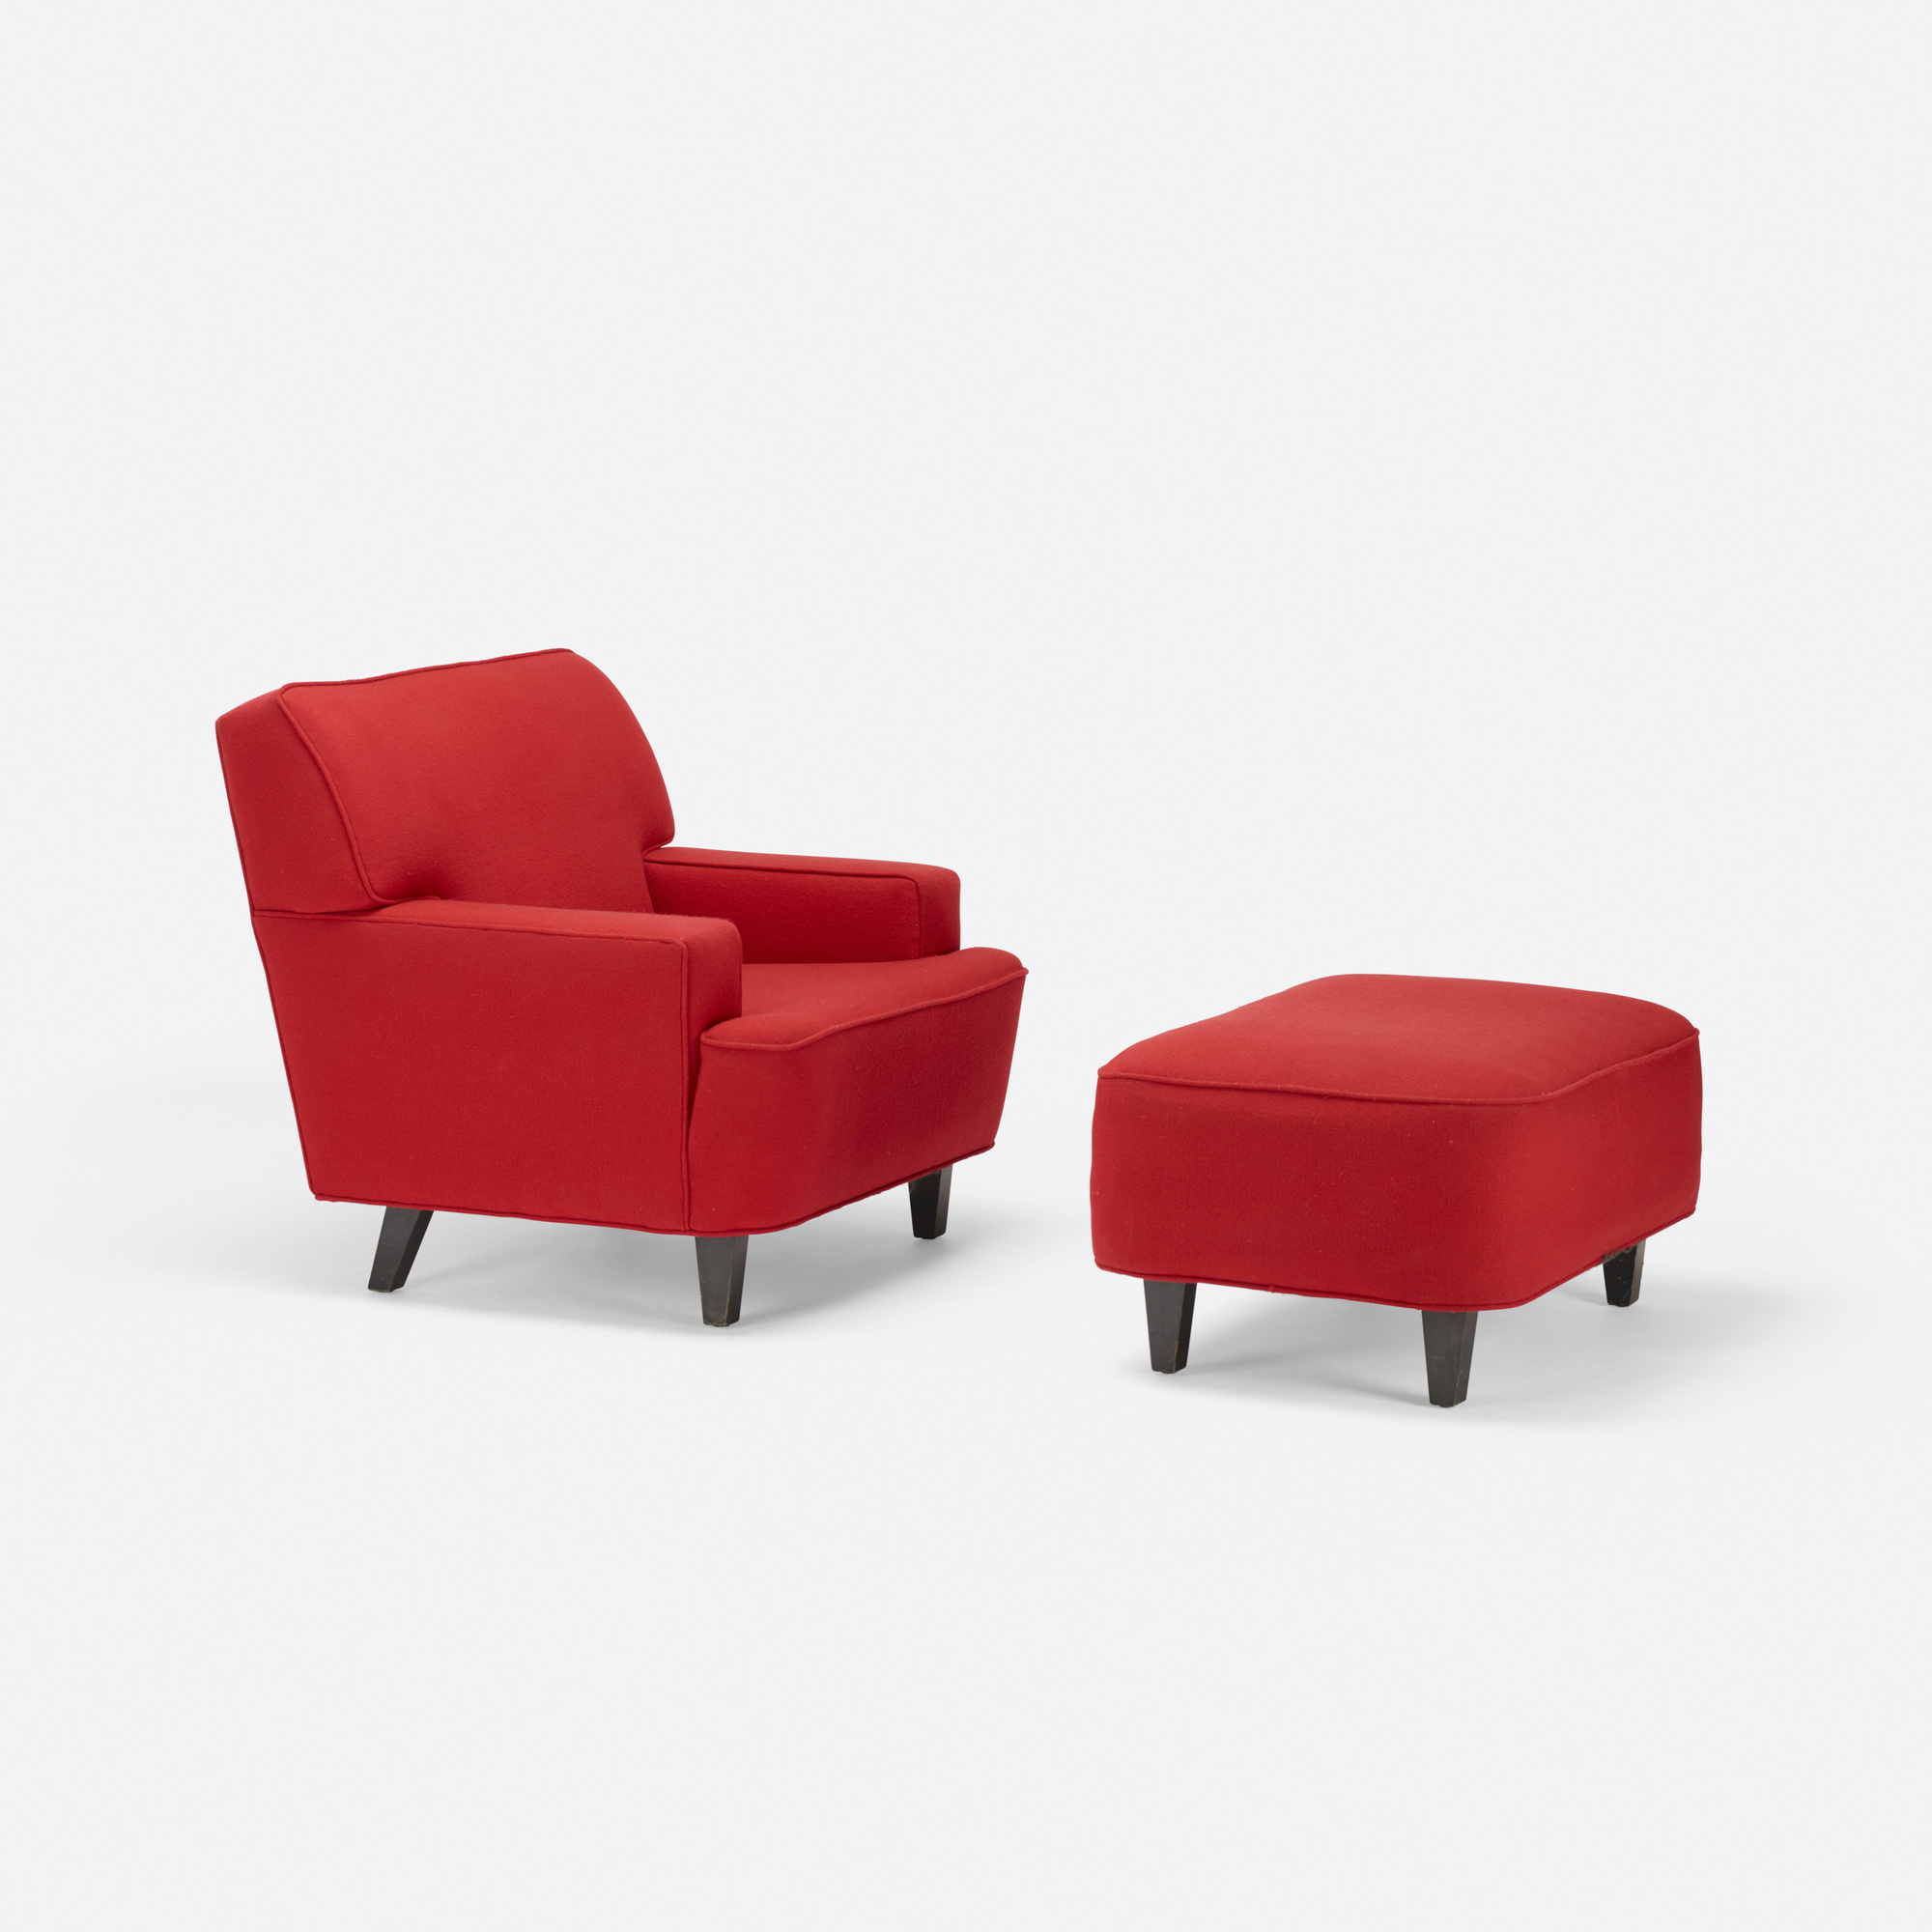 636: George Nelson & Associates / lounge chair and ottoman (1 of 1)